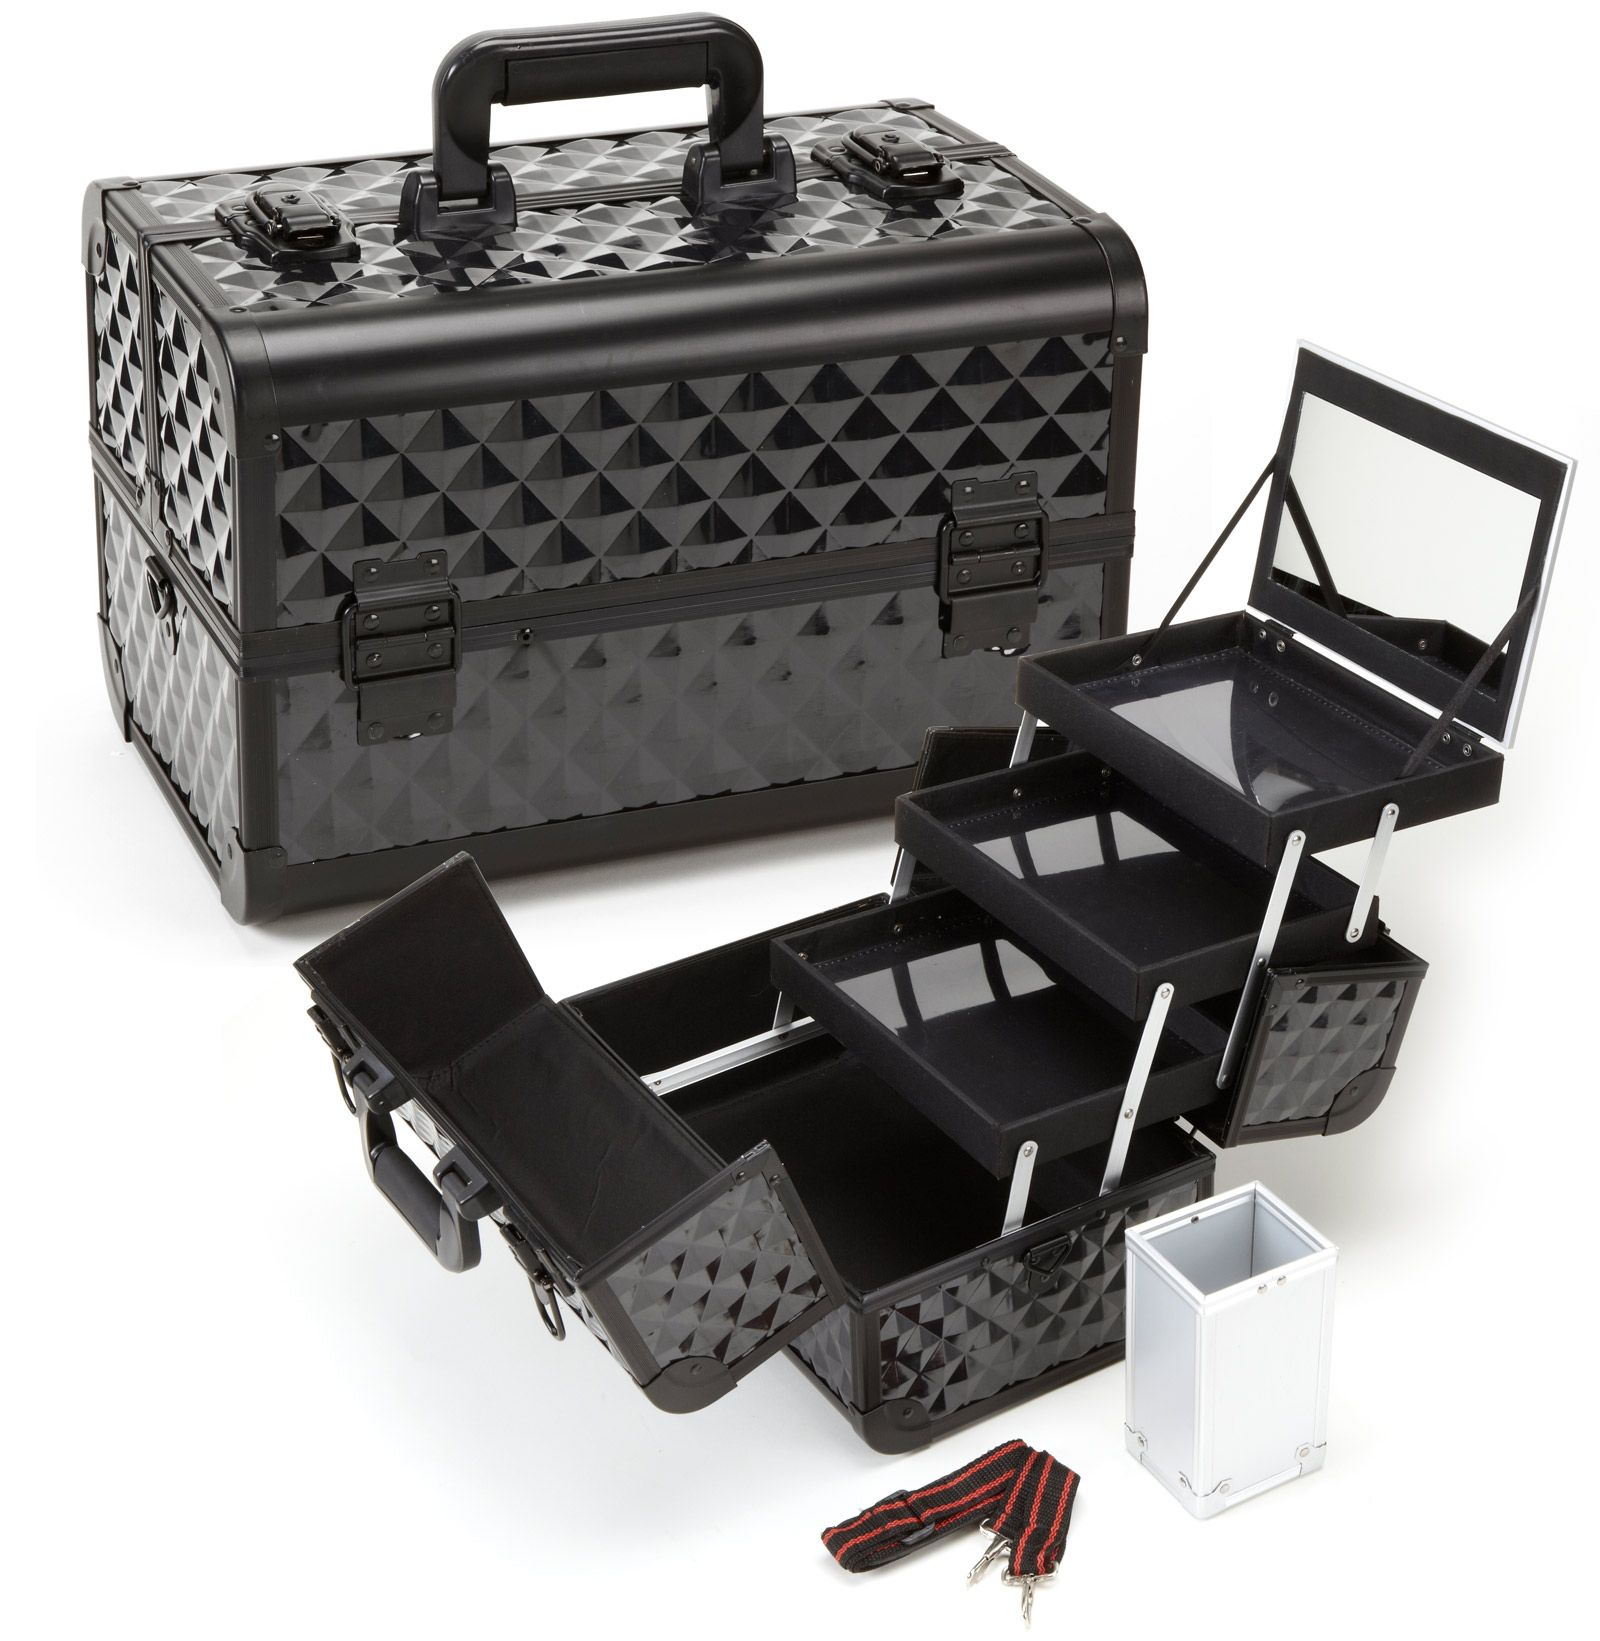 Professional Makeup Case with Trays and Brush Holder